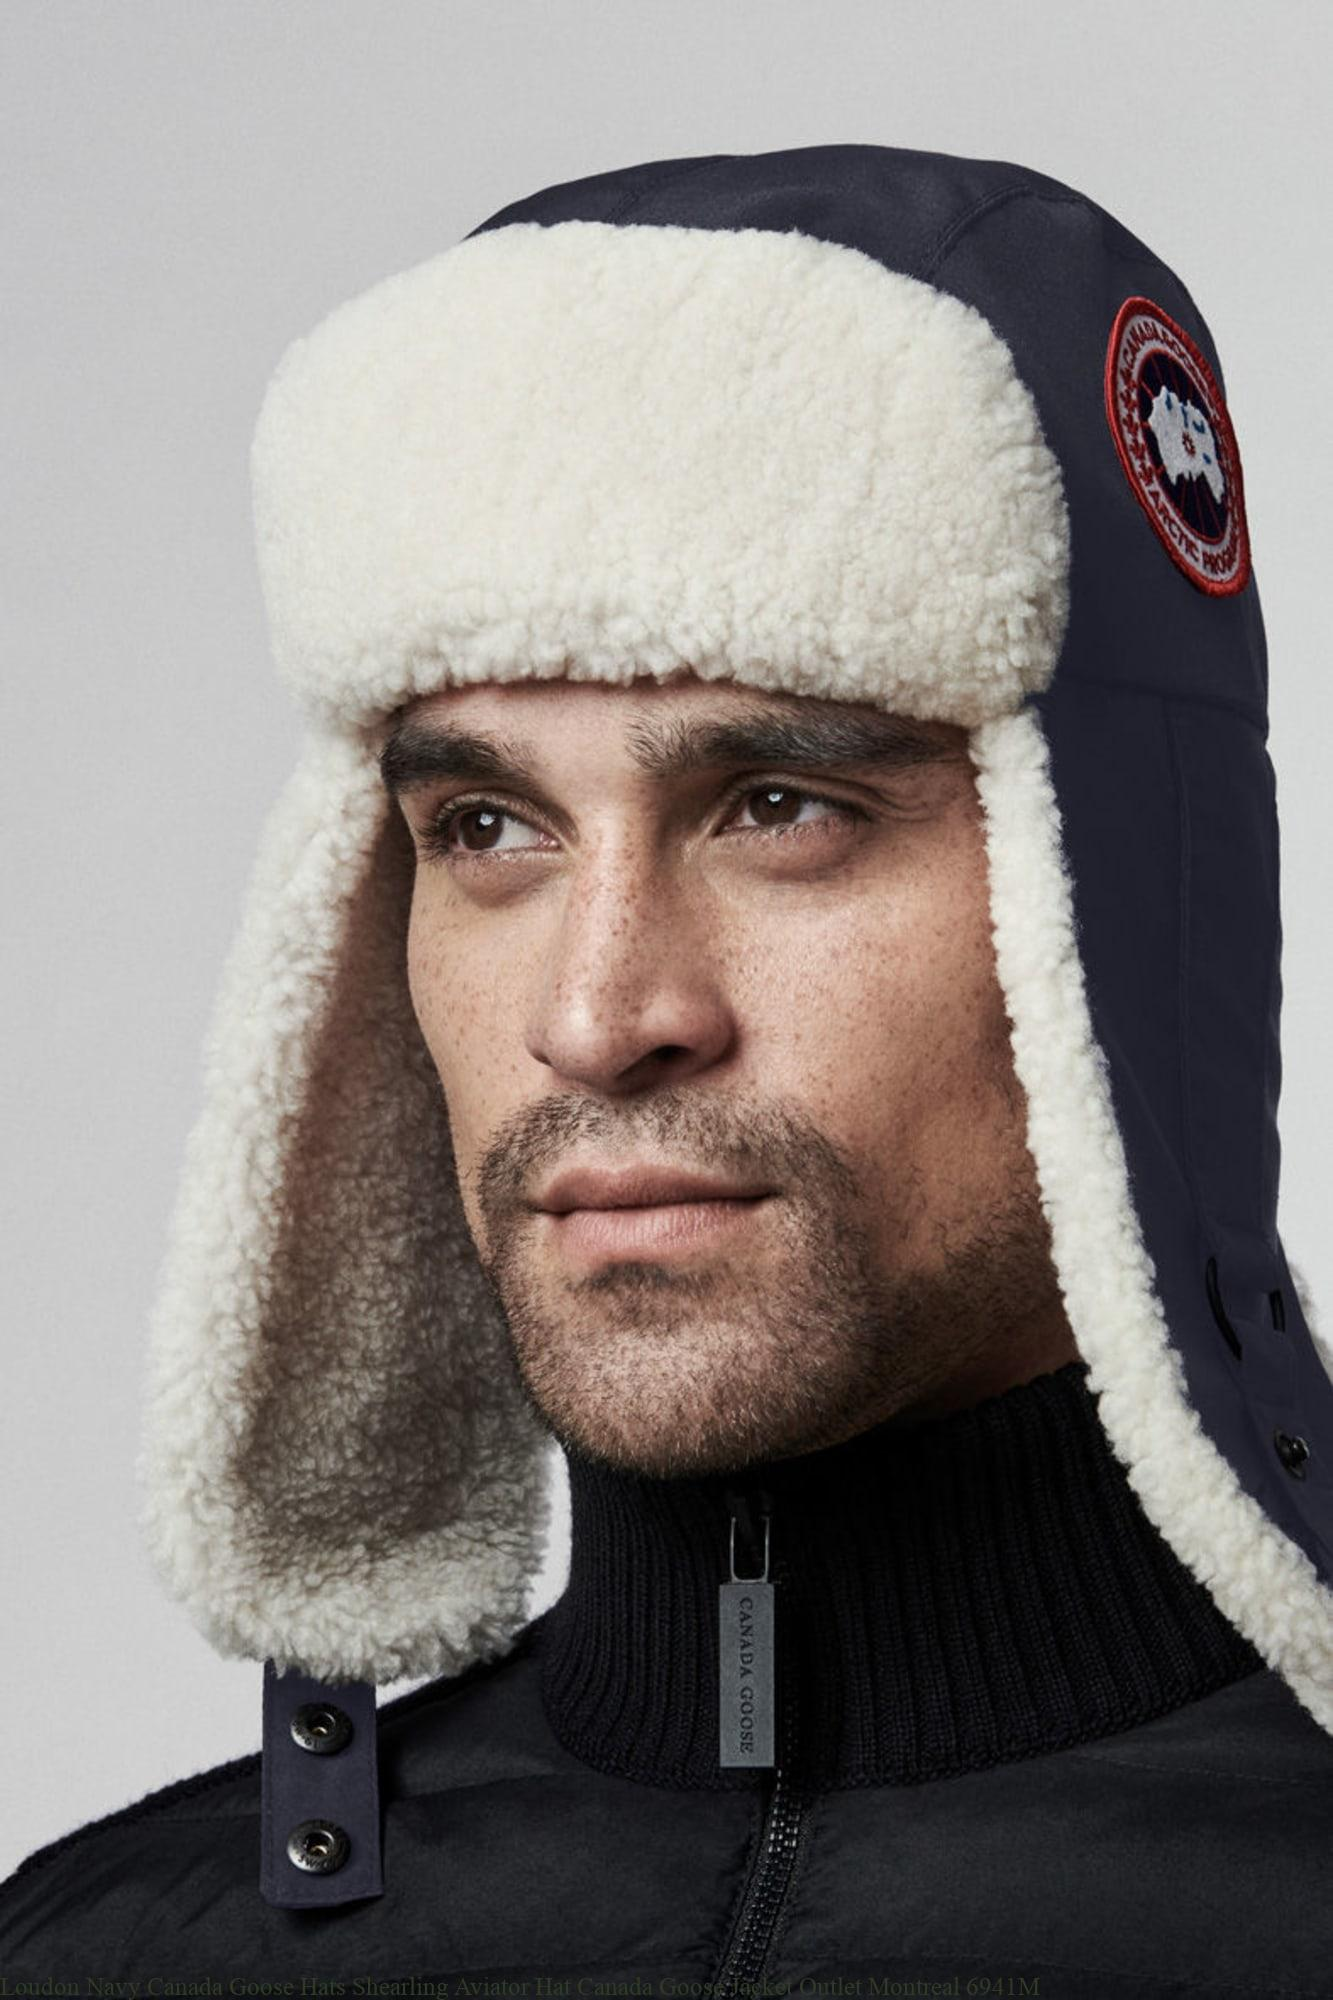 Loudon Navy Canada Goose Hats Shearling Aviator Hat Canada Goose Jacket  Outlet Montreal 6941M – Canada Goose Outlet Online – Cheap Canada Goose Sale f2c8e244ccc4